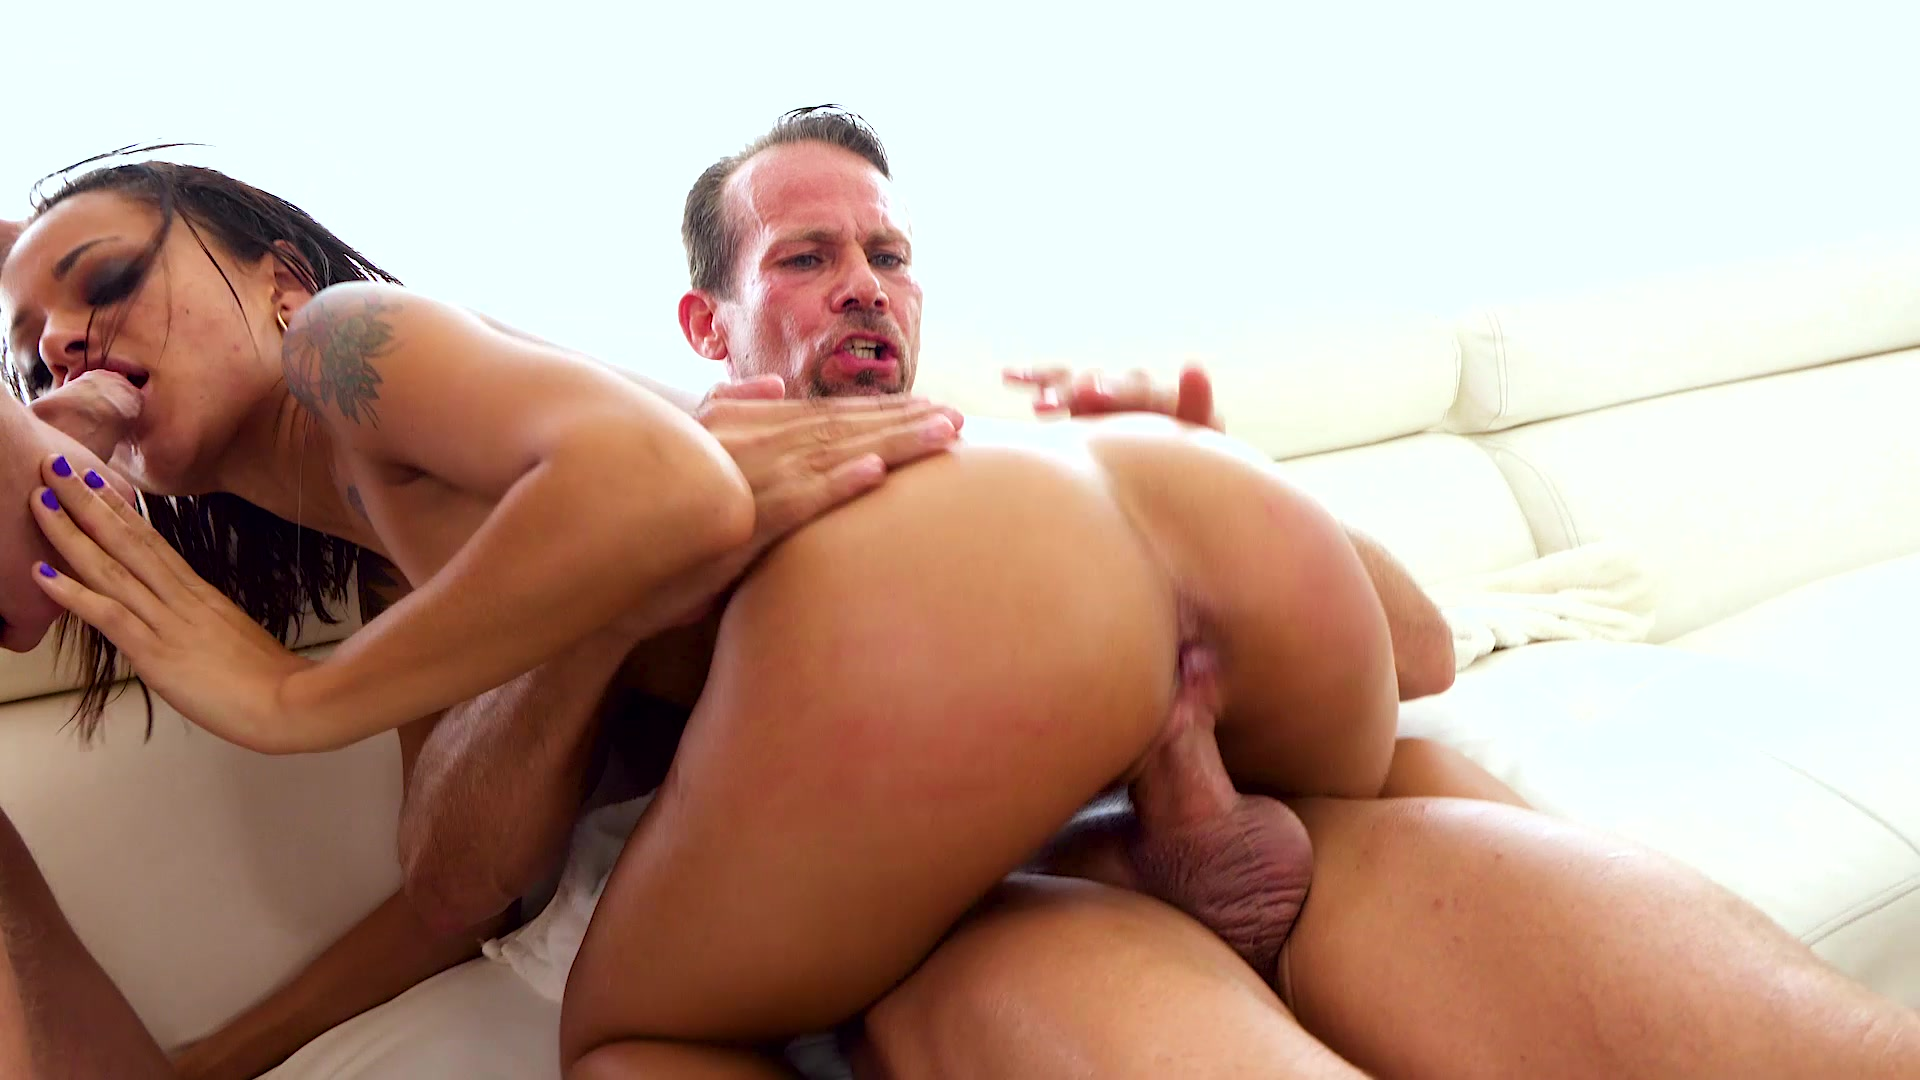 Scene with Holly Hendrix - image 20 out of 20